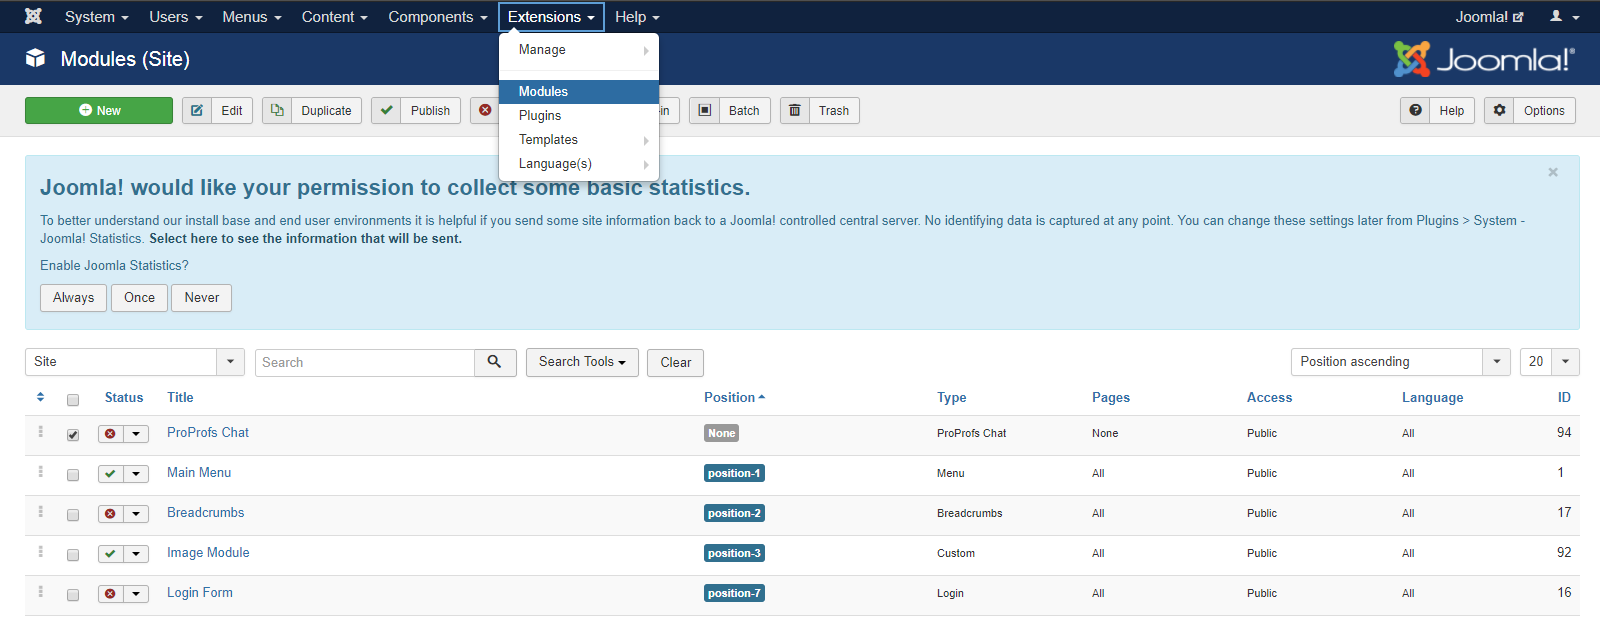 Select the ProProfs Live Chat Module and click Edit